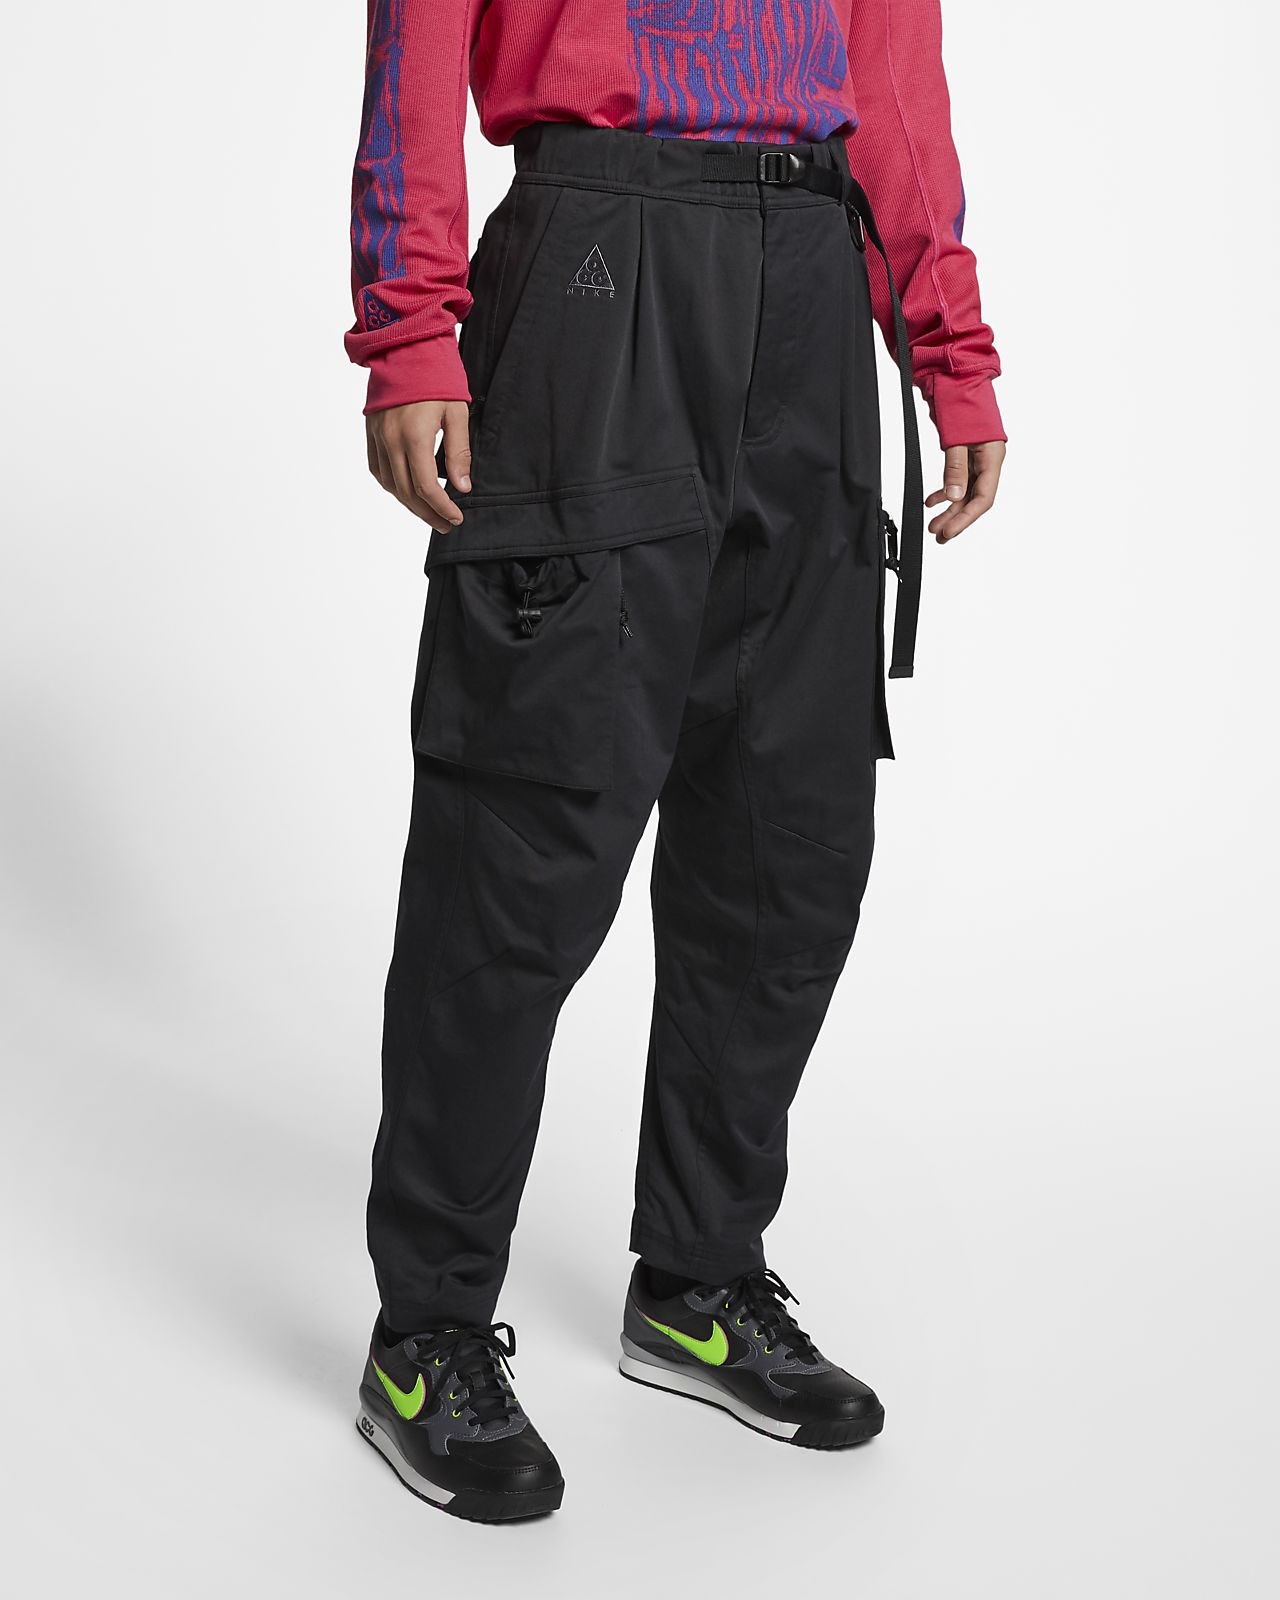 best website 120c8 652b3 Men s Trousers. Nike ACG